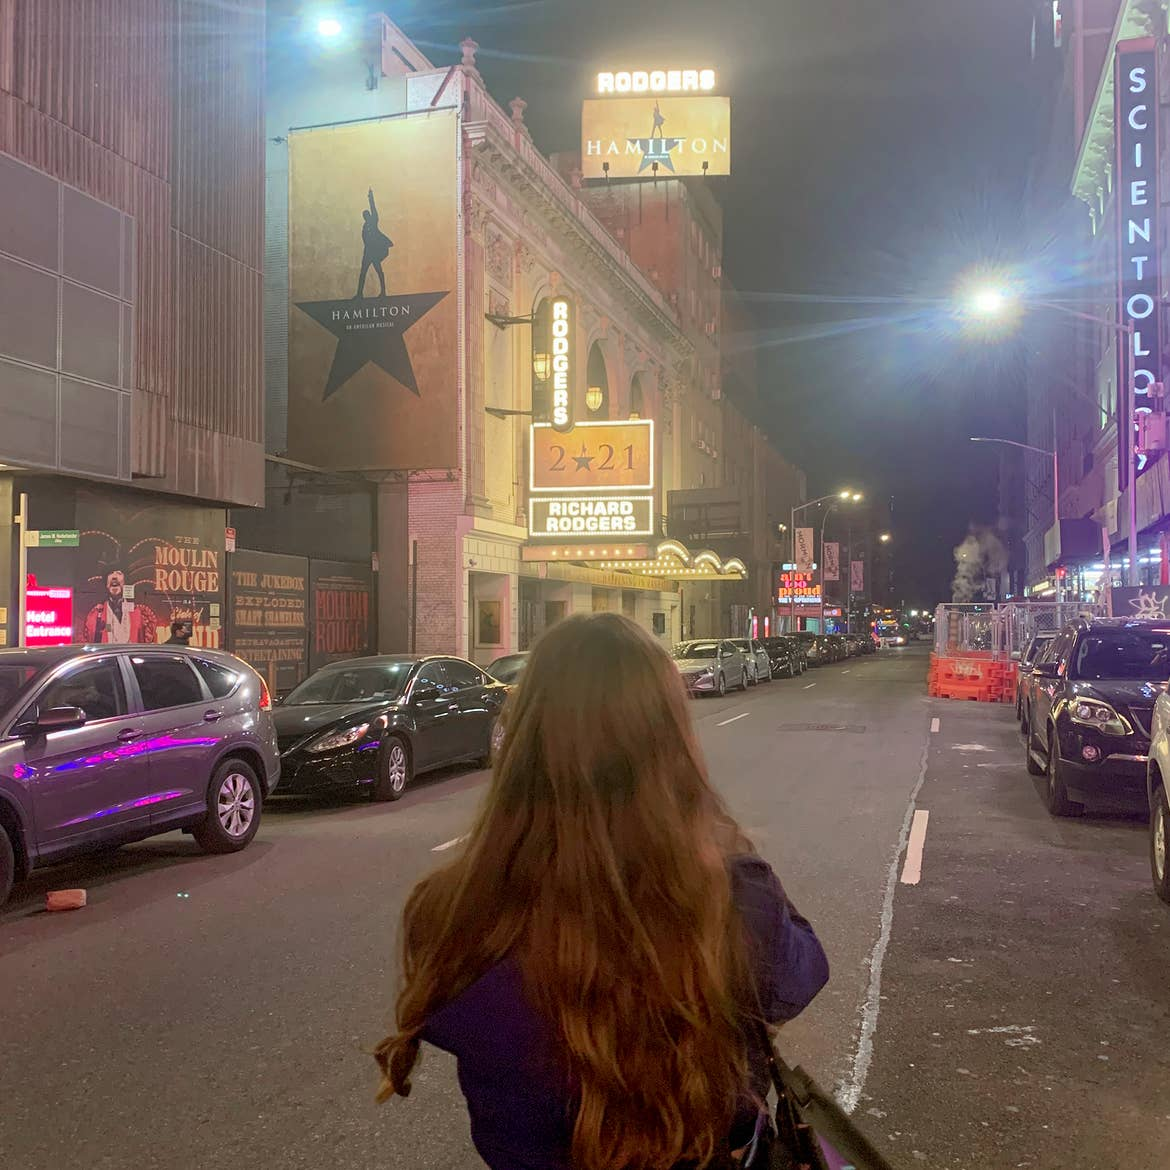 A caucasian woman with long ash-blonde hair wears a jacket under a marquee for the production of 'Hamilton' that reads, '2021' in New York City.